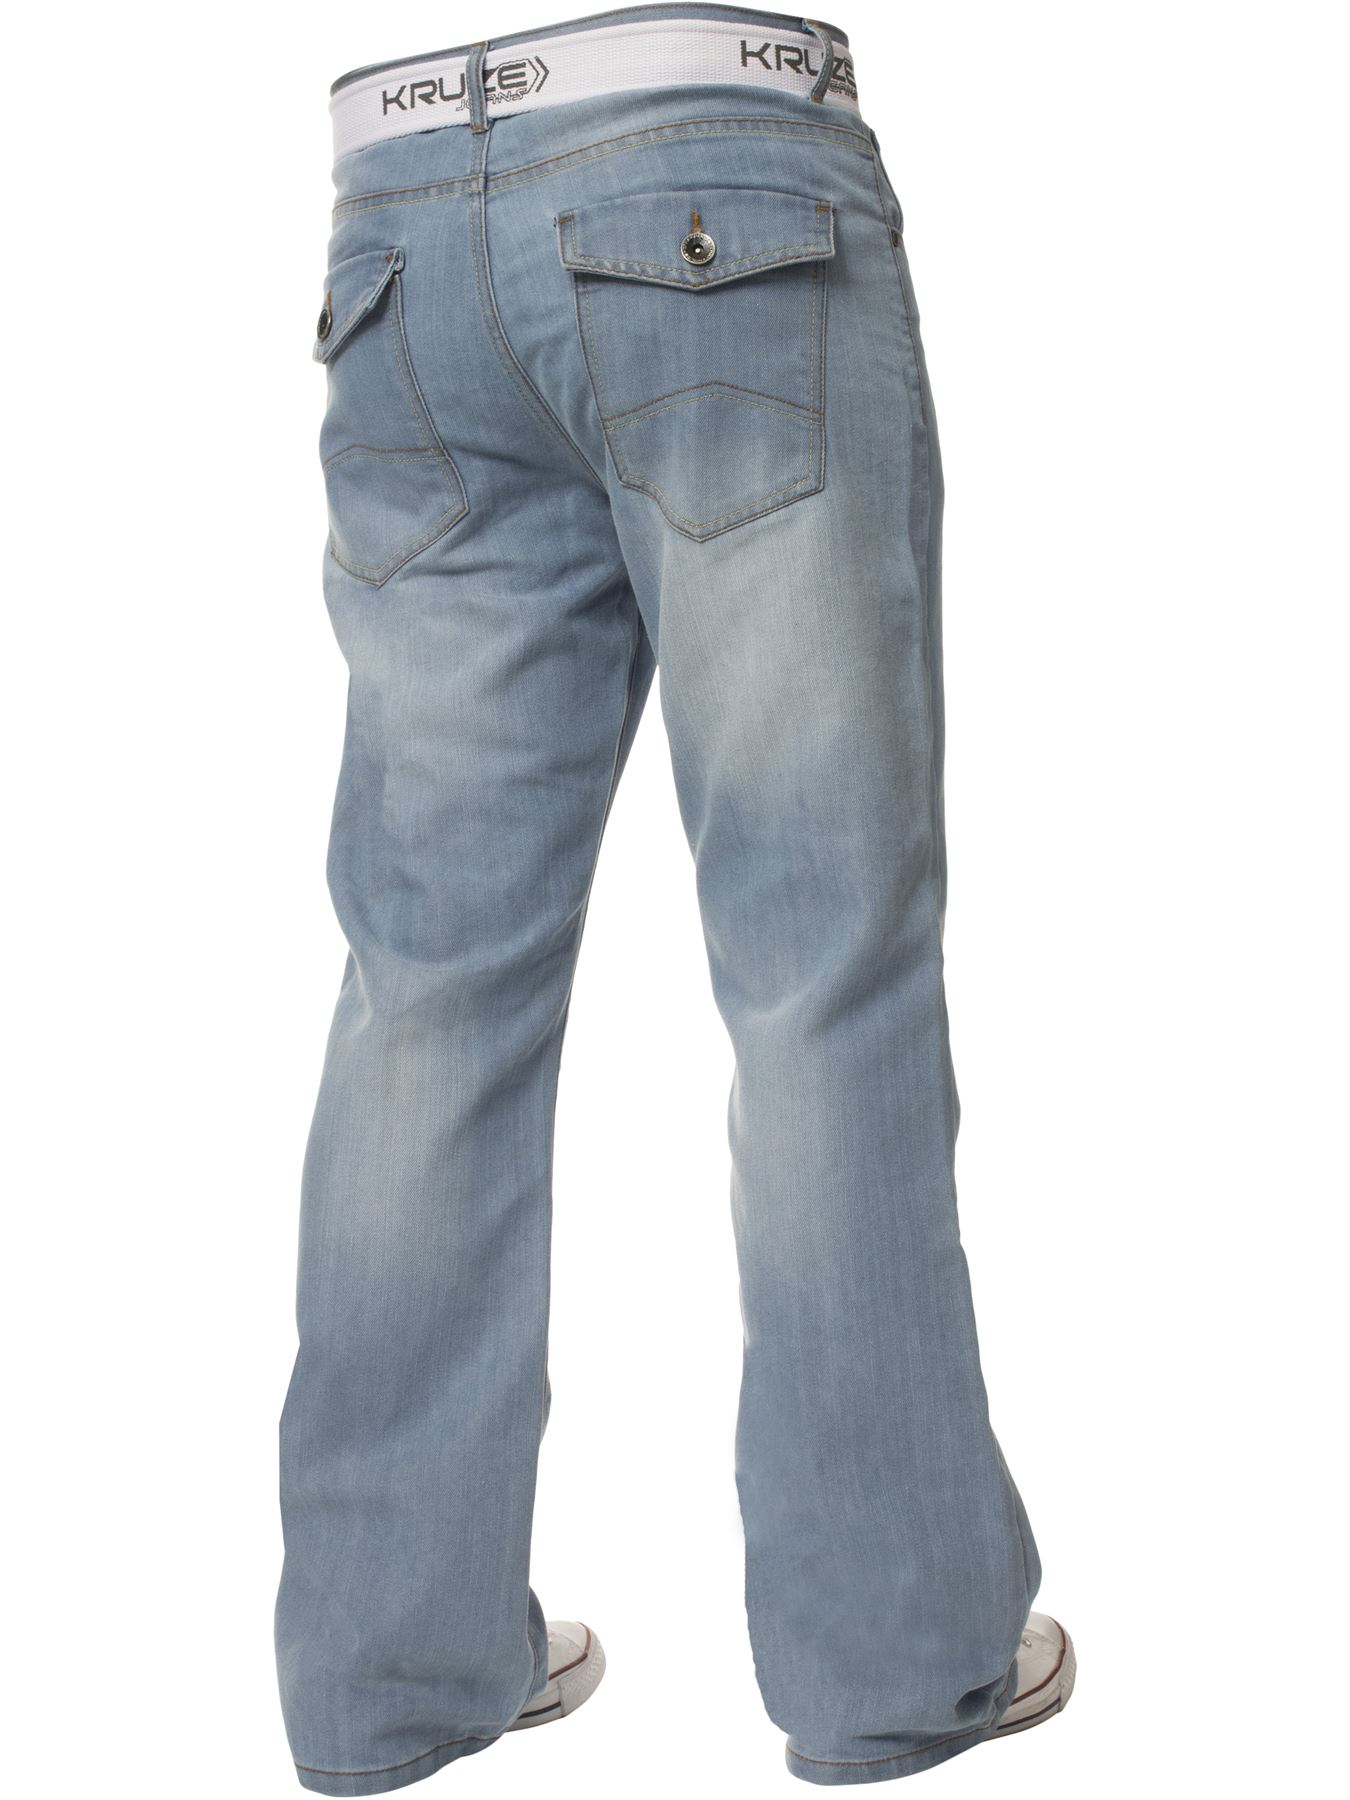 Kruze-Mens-Bootcut-Jeans-Flared-Wide-Leg-Denim-Pants-Big-Tall-King-All-Waists thumbnail 11